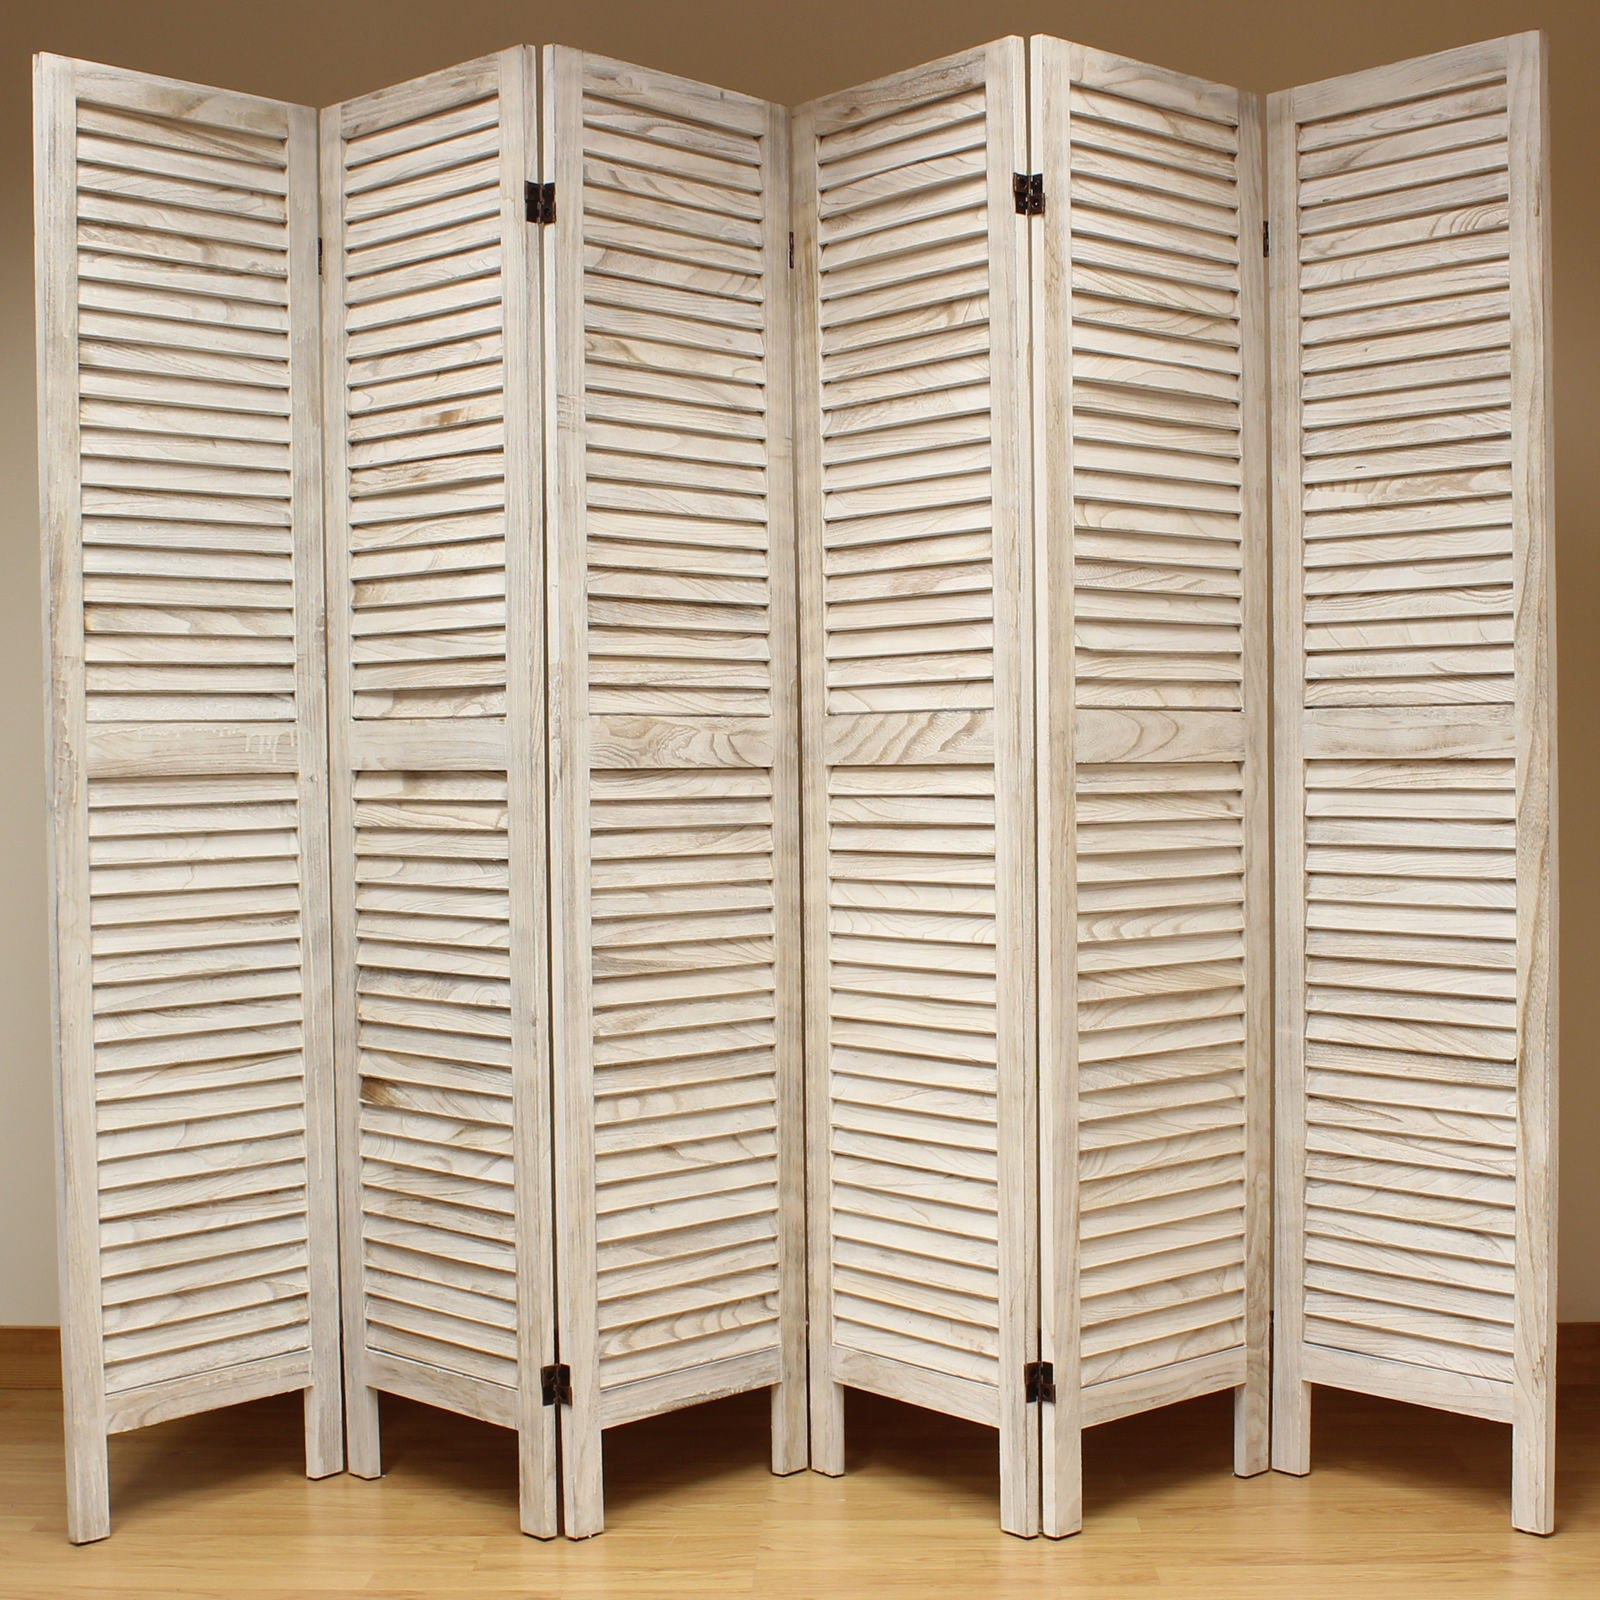 wooden slat room divider screen 6 panel cream room dividers uk